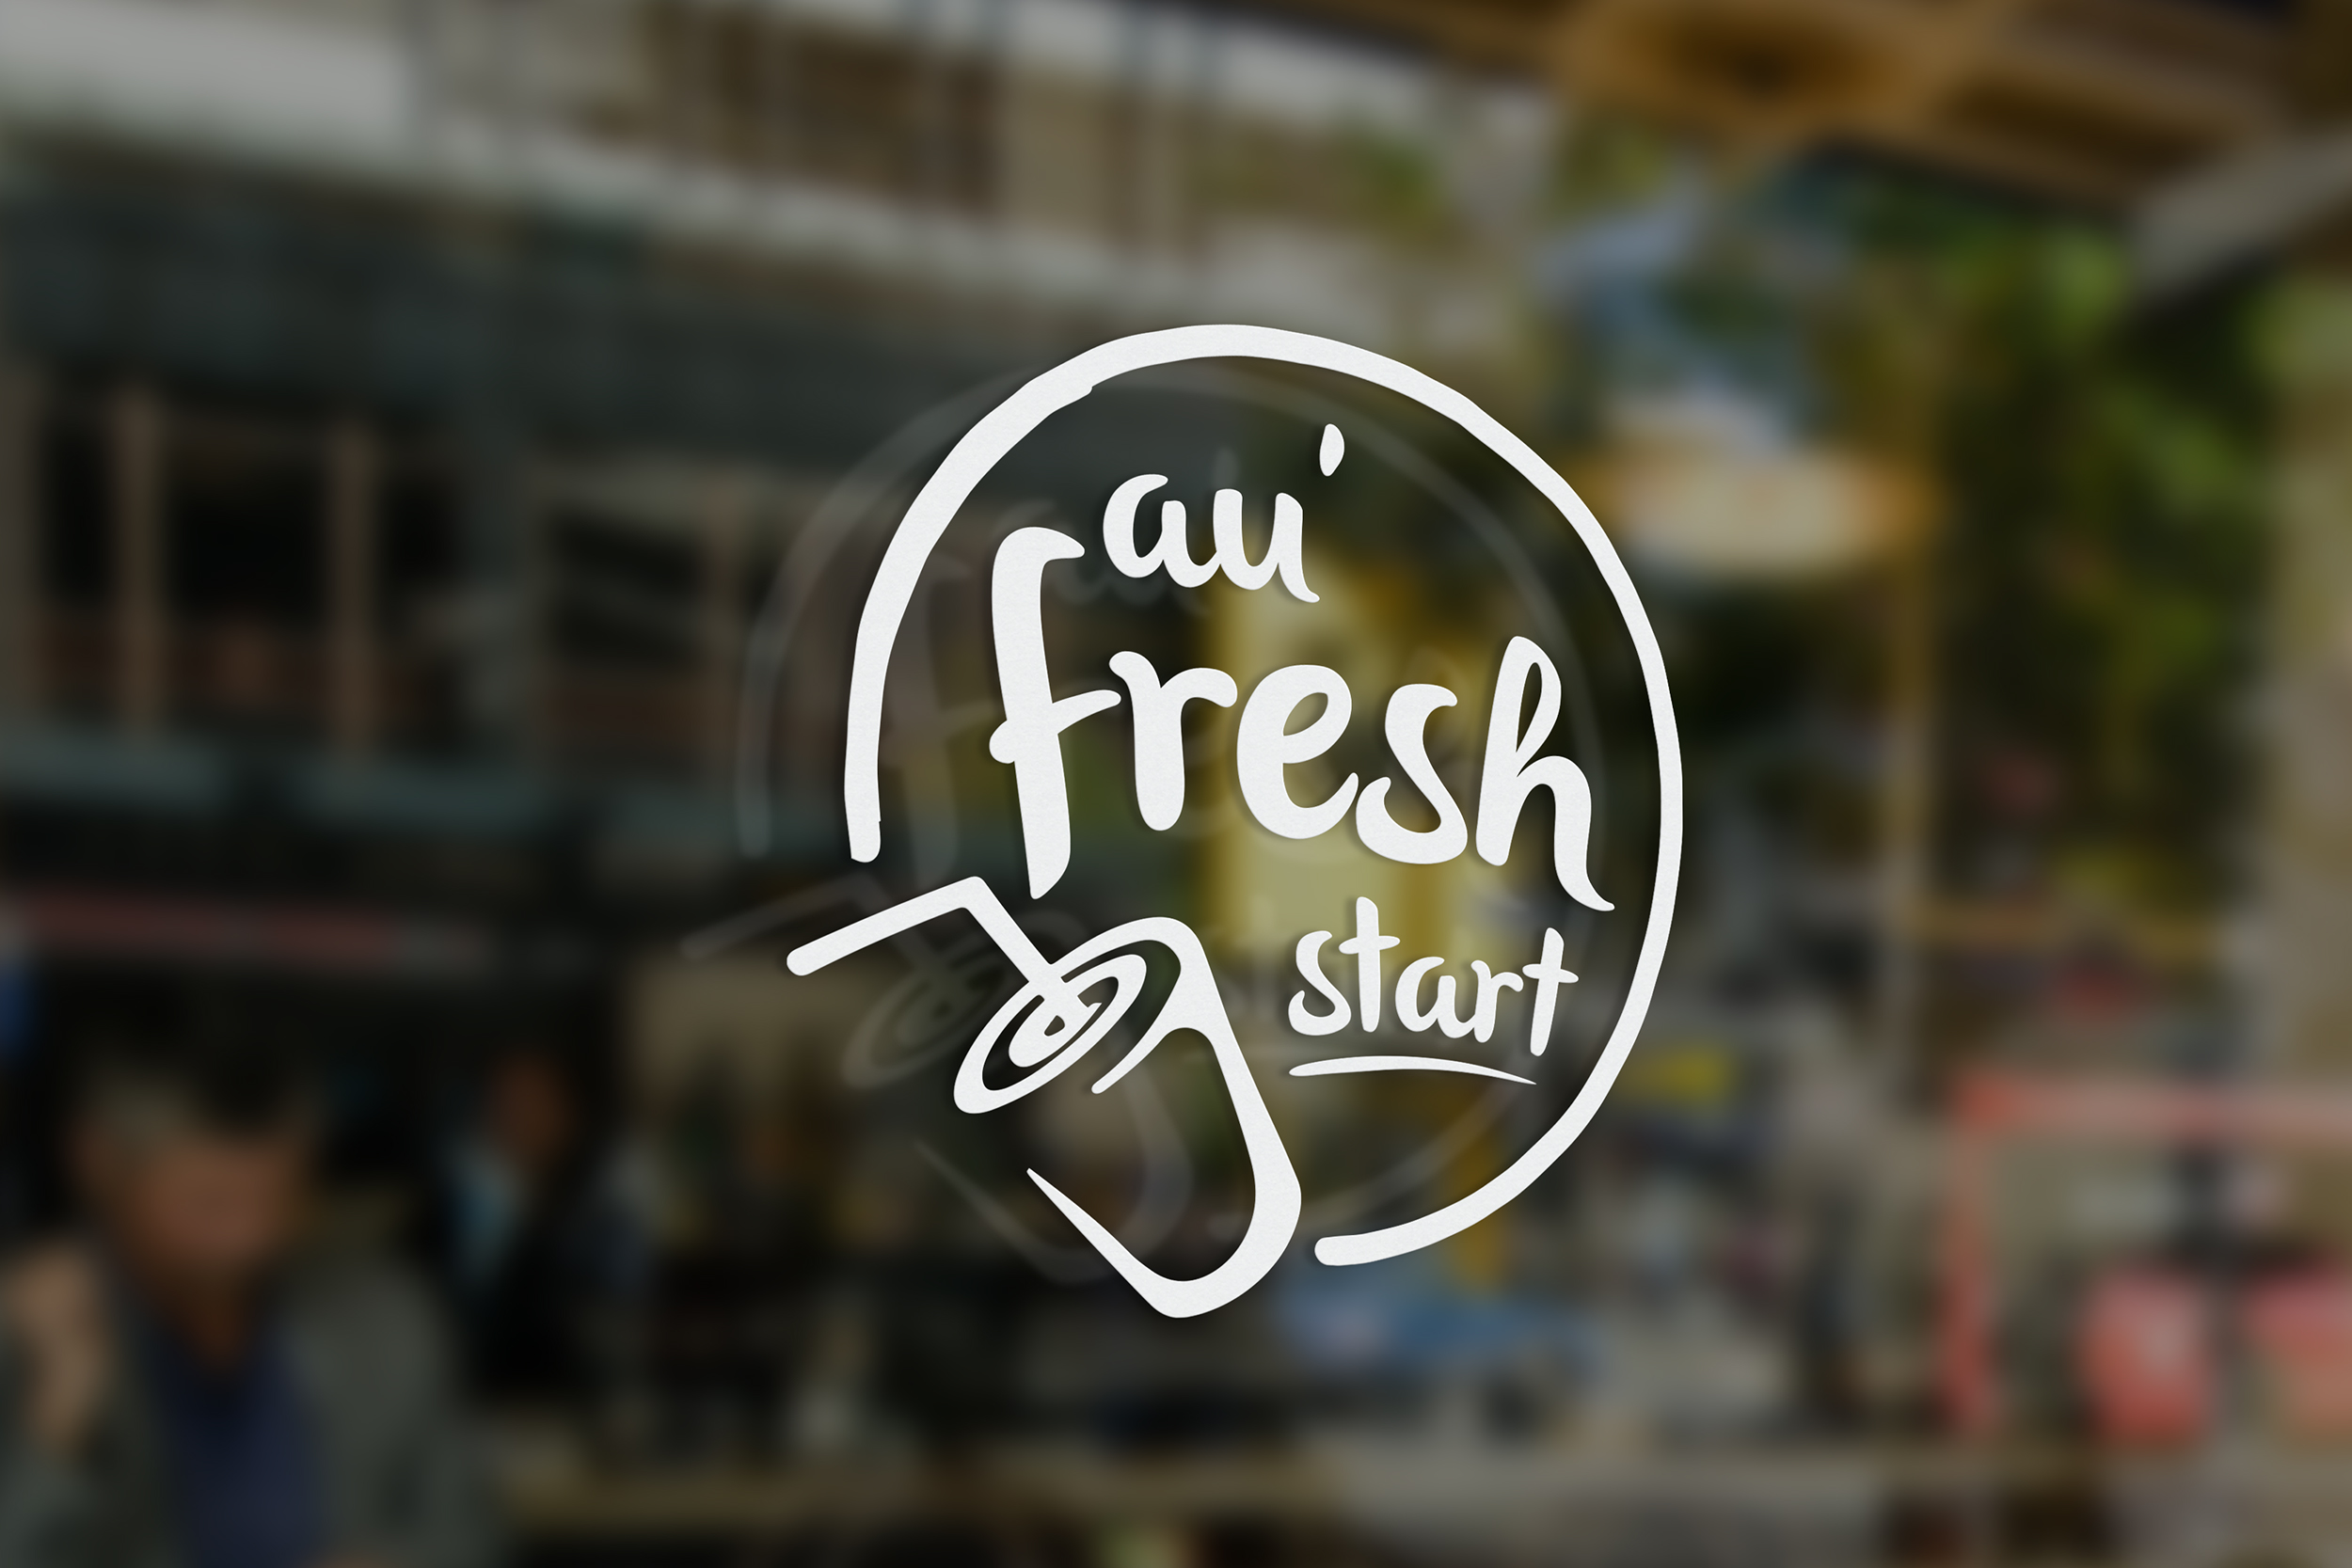 Aufresh_Start_Portfolio_Window.jpg